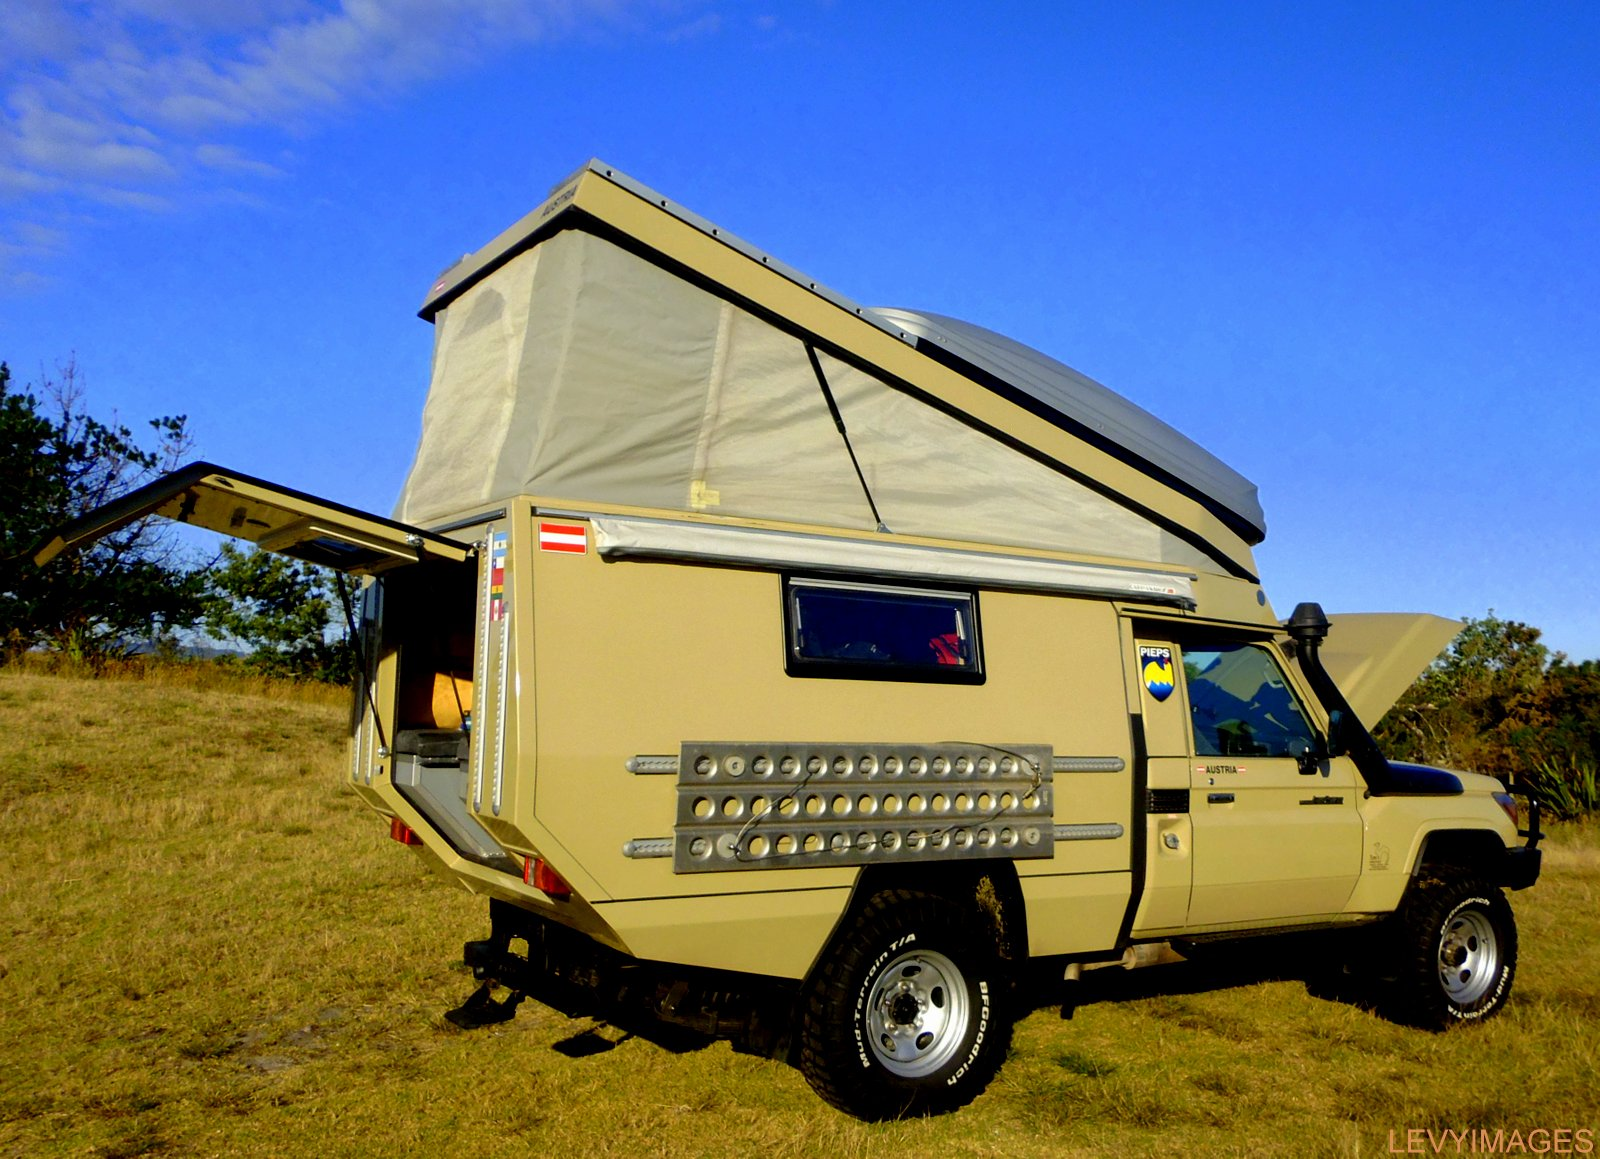 The Flying Tortoise Round The World In A Tiny Home On